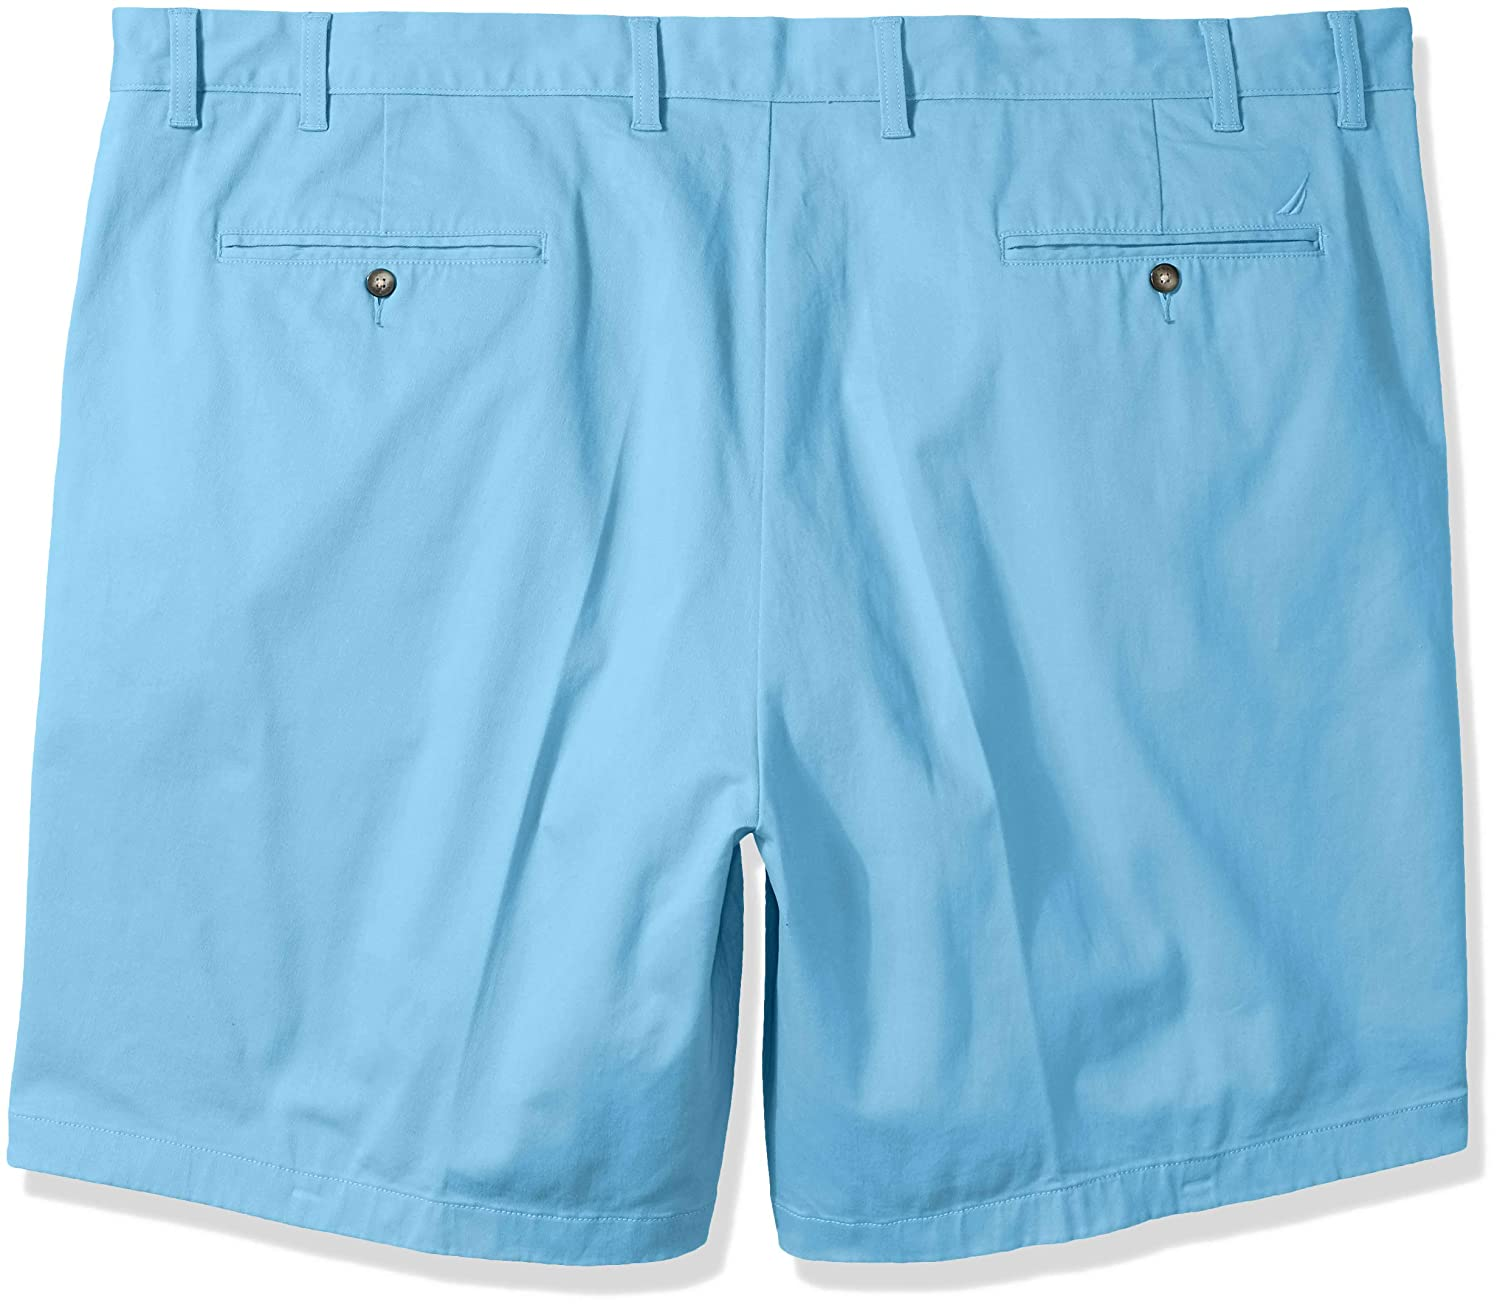 Nautica Mens Classic Fit Flat Front Stretch Chino Deck Short Casual Shorts